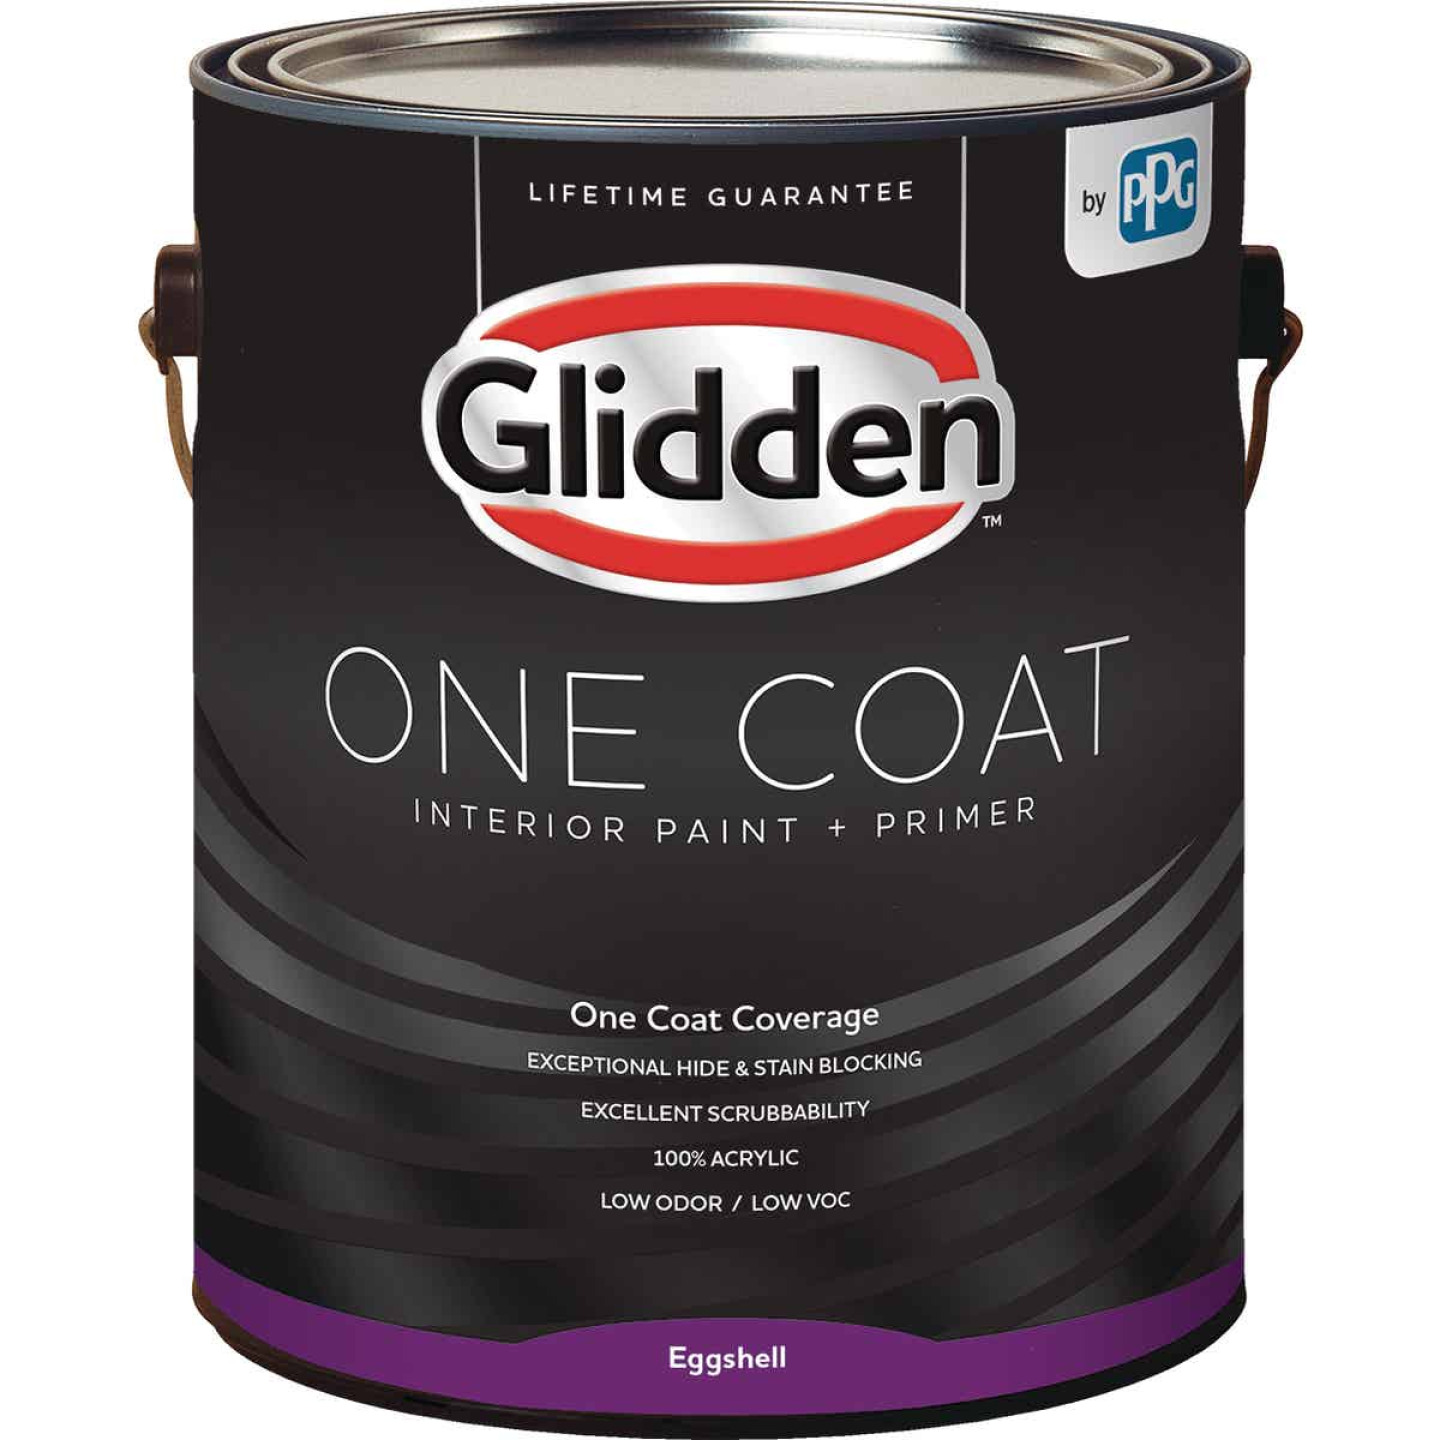 Glidden One Coat Interior Paint + Primer Eggshell Midtone Base 1 Gallon Image 1